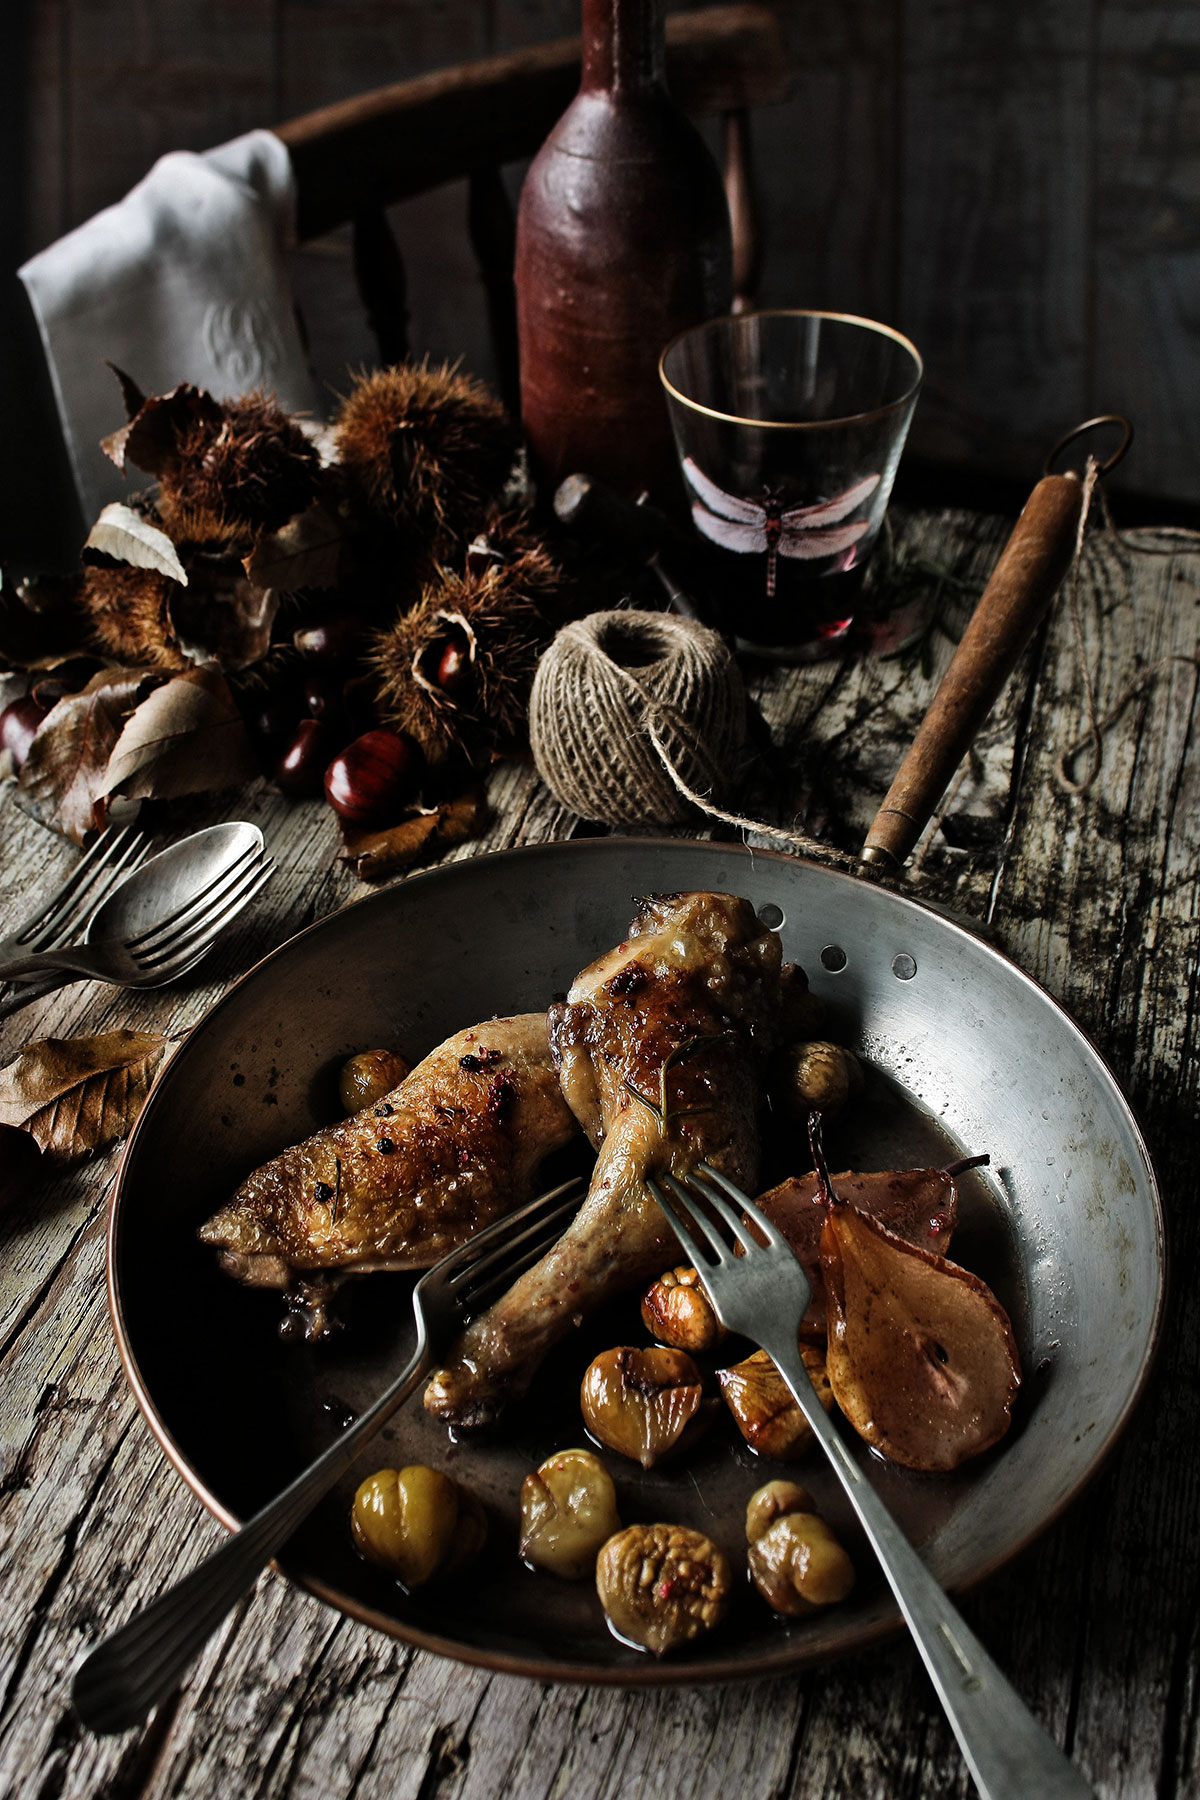 Chicken thighs with pears chestnuts and port recipe sbs food chicken thighs with pears chestnuts and port httpssbsfood recipeschicken thighs pears chestnuts and port forumfinder Image collections